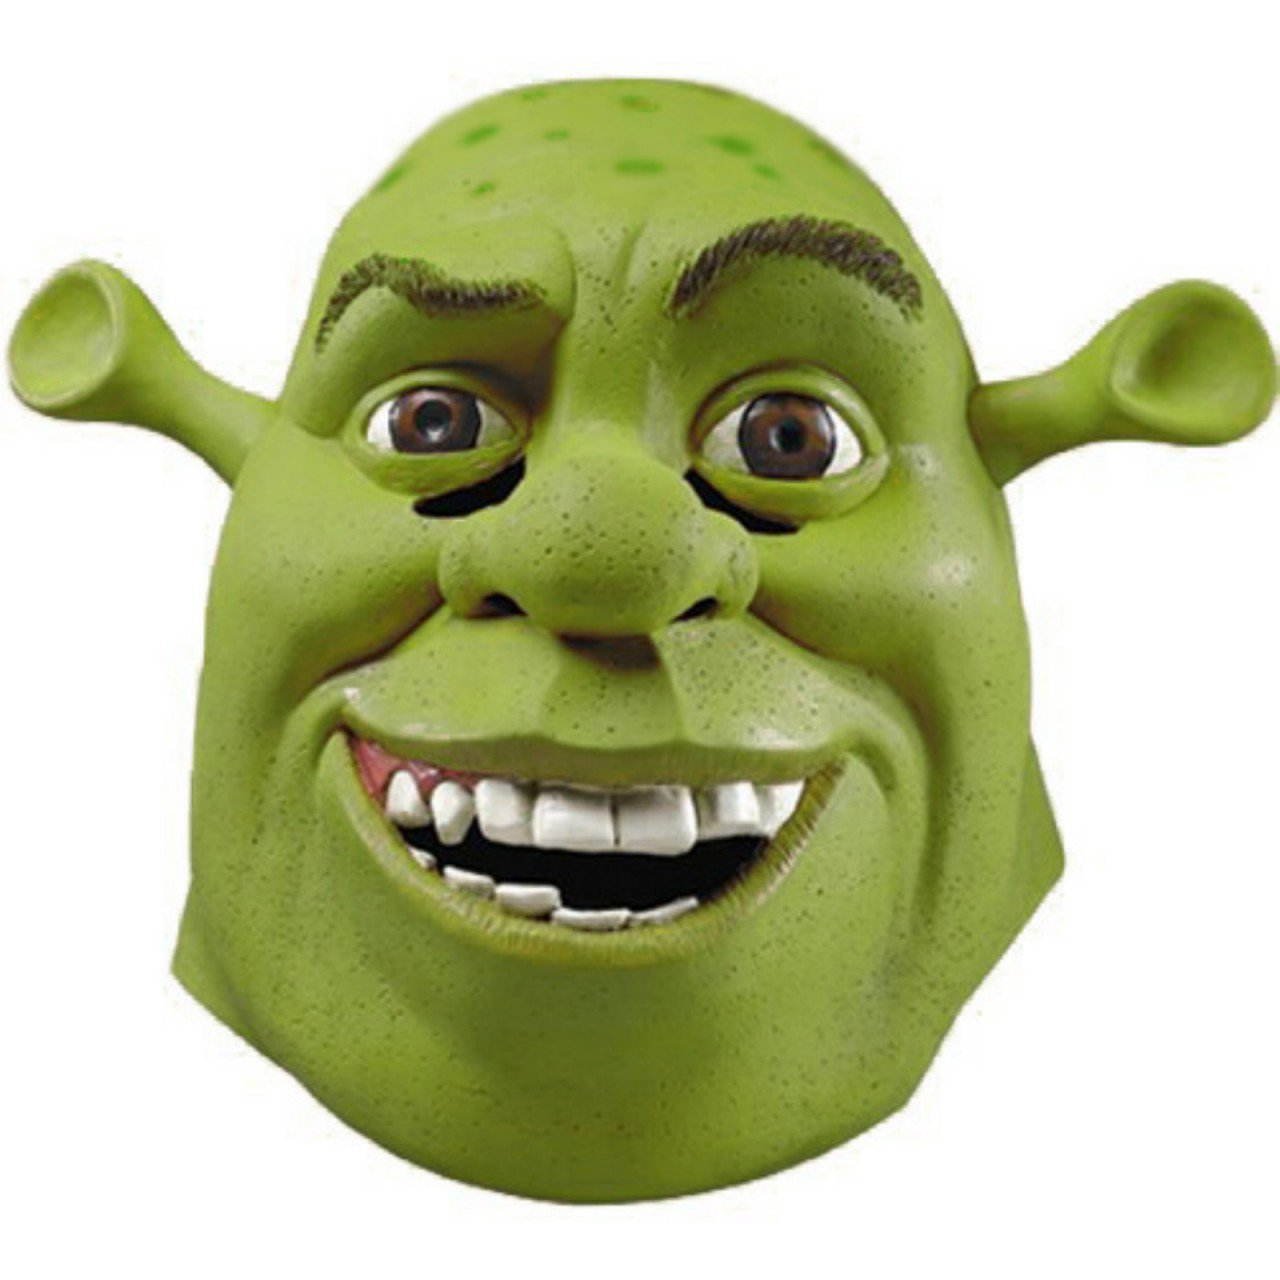 Fantasia Shrek Adulto Máscara De Látex